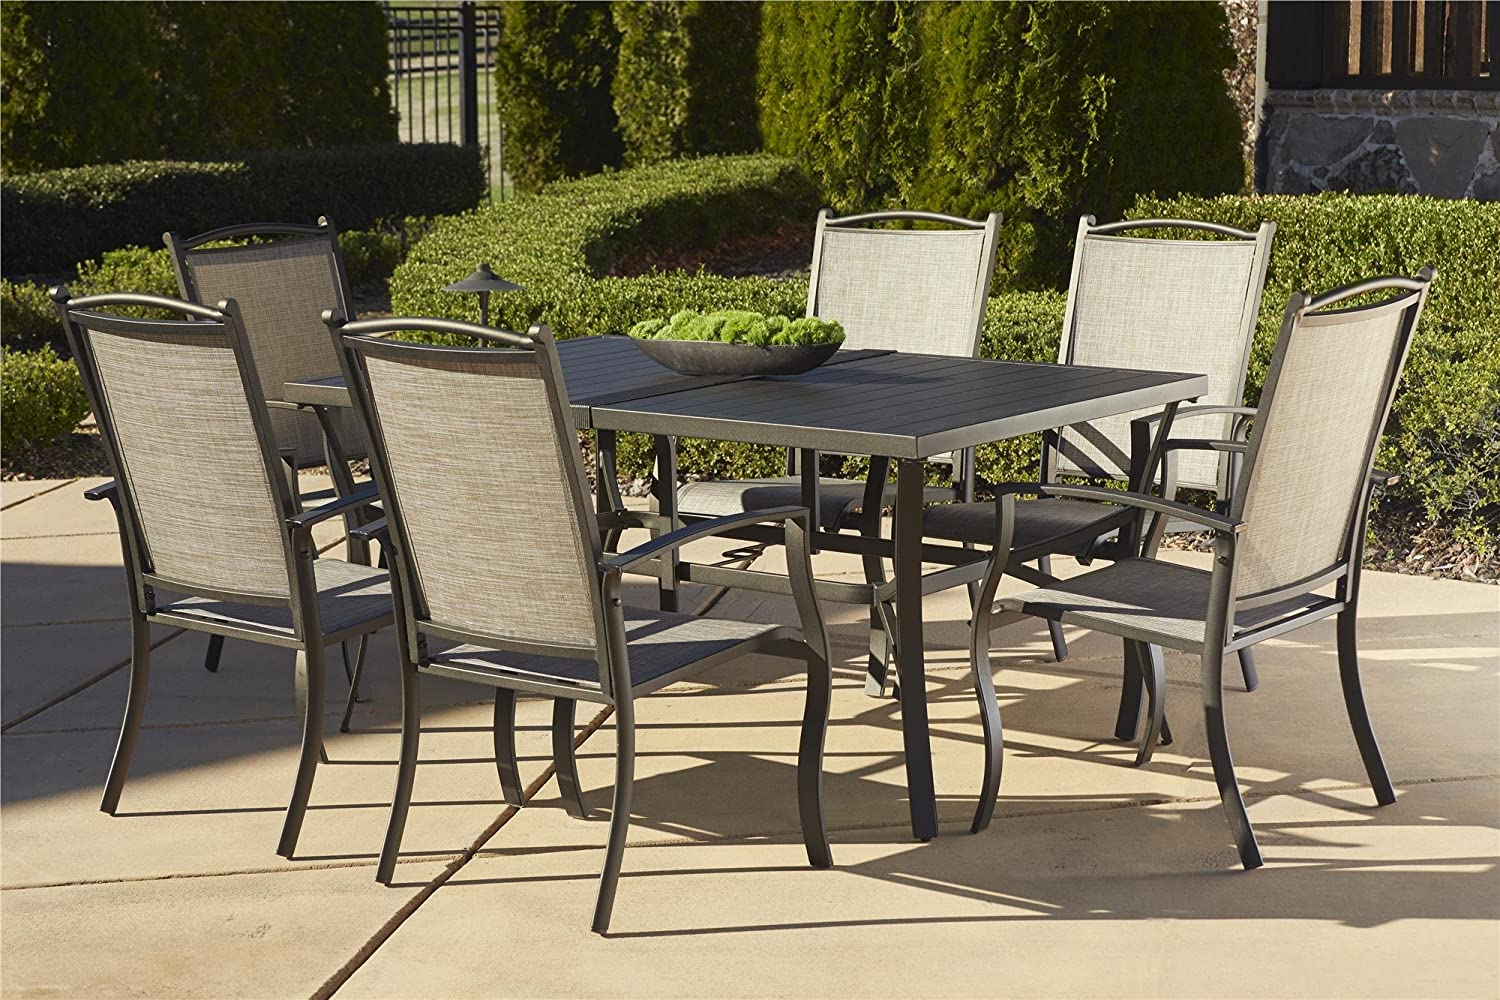 Amazon.com: Cosco Outdoor 7 Piece Serene Ridge Aluminum Patio Dining ...